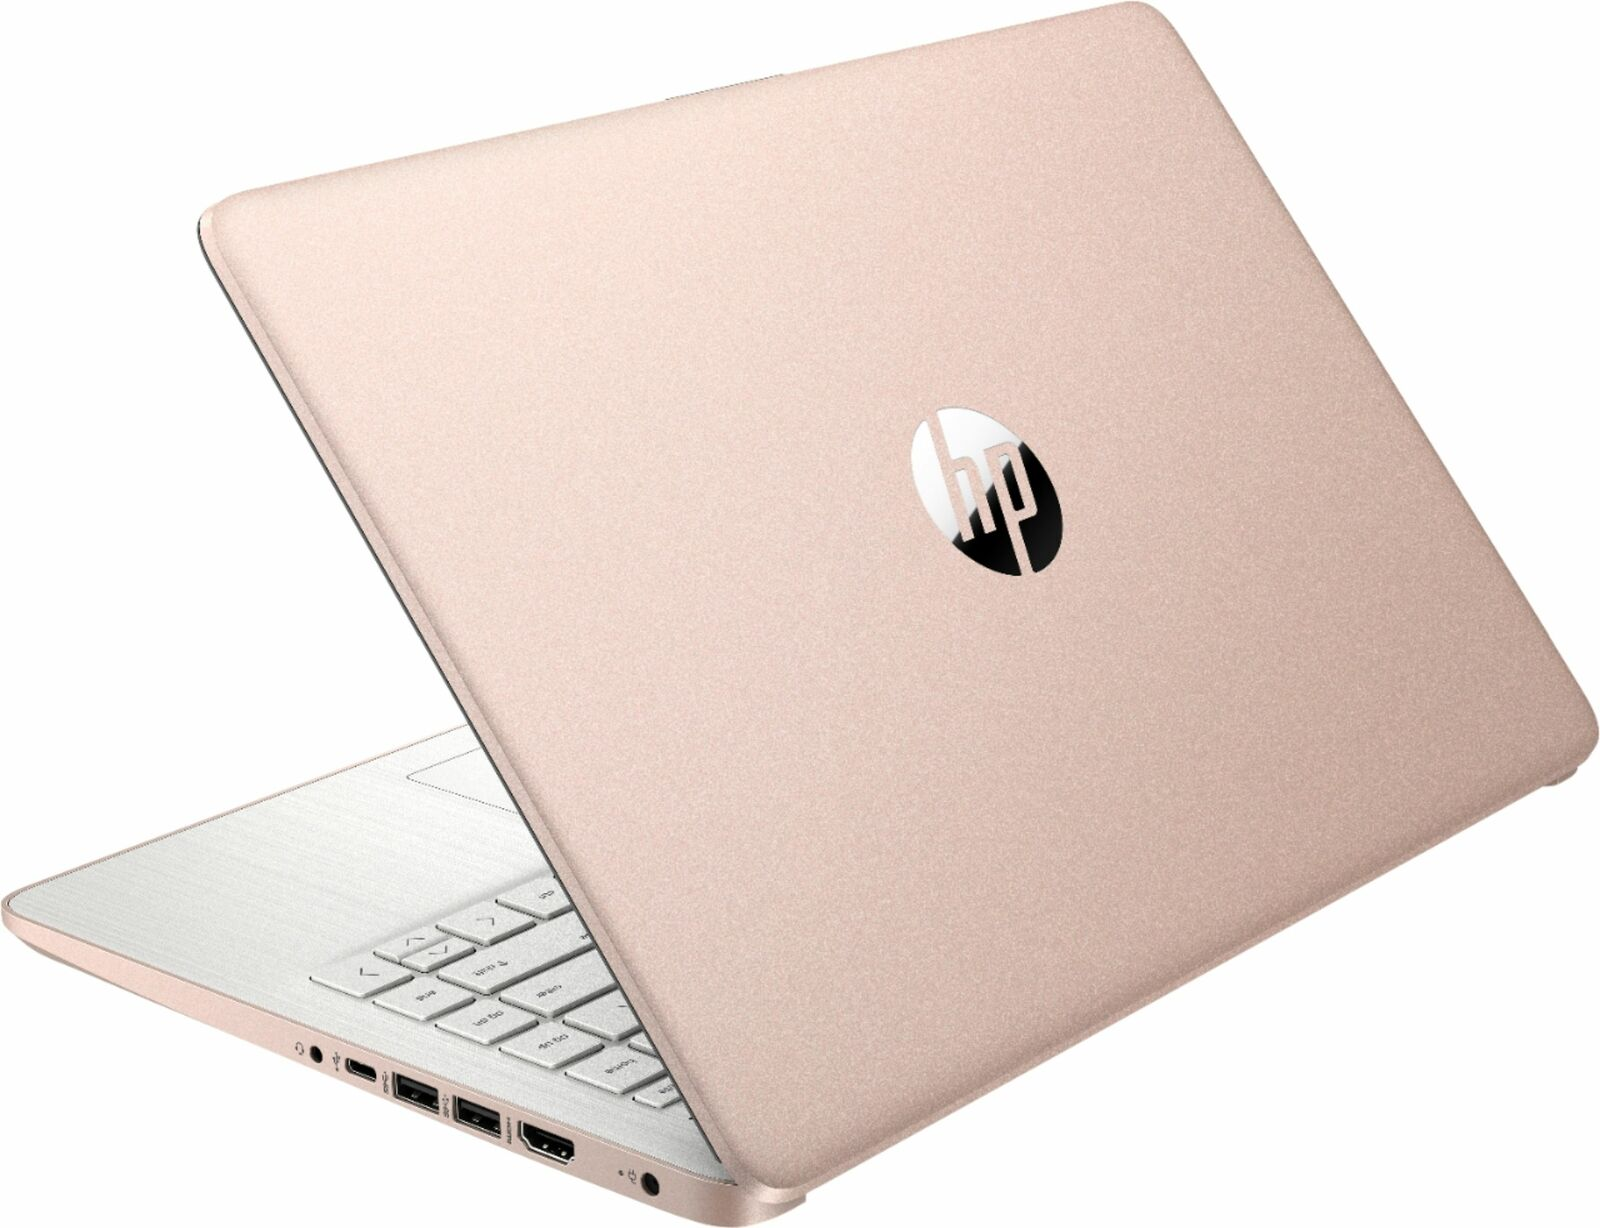 HP Rose Gold Laptops for sale in Trinidad and Tobago